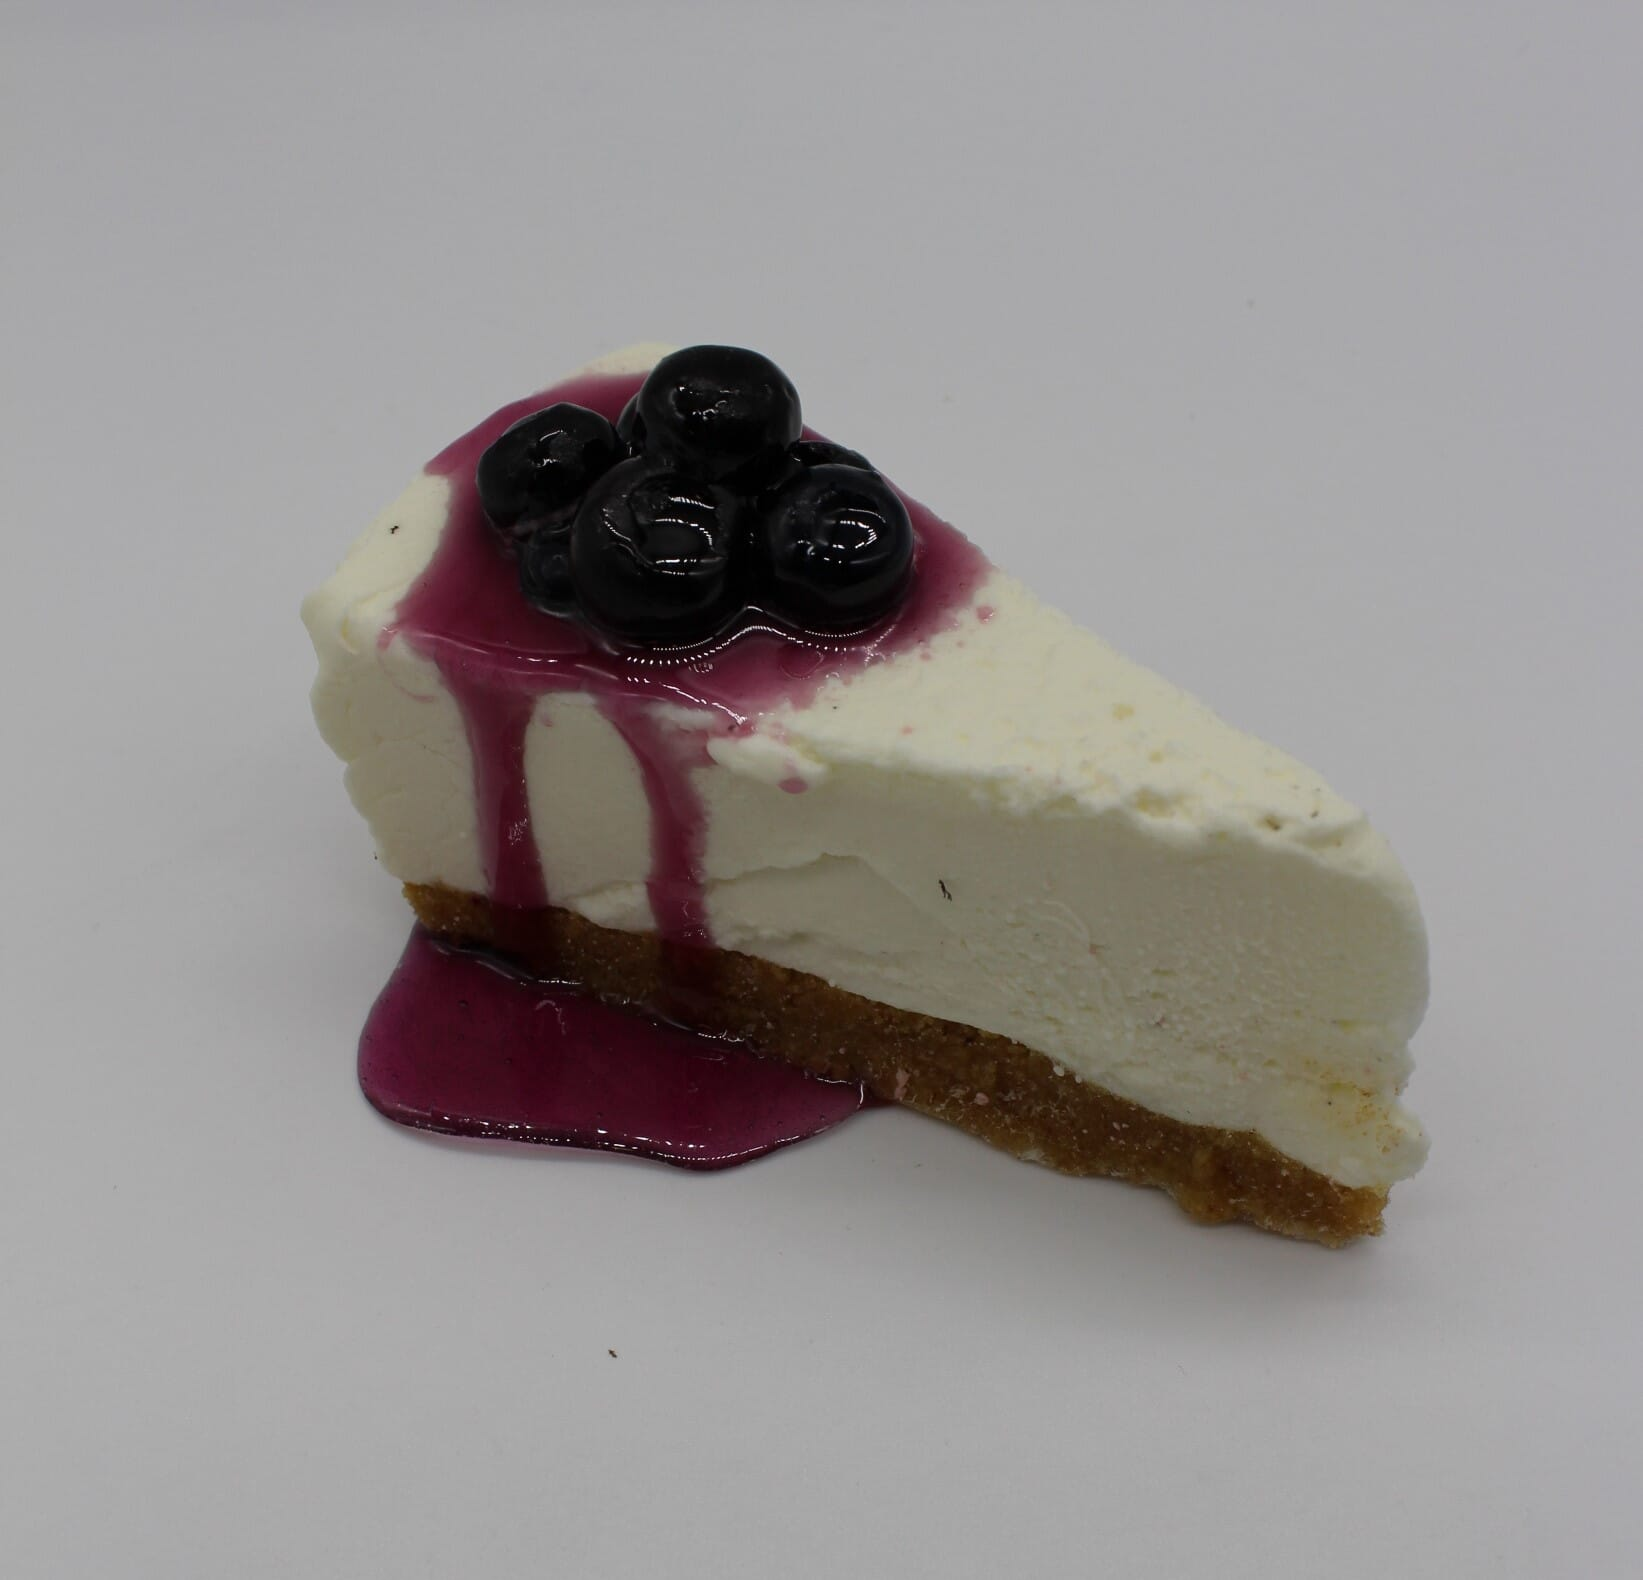 Fake Slice of Cheesecake with Blueberries